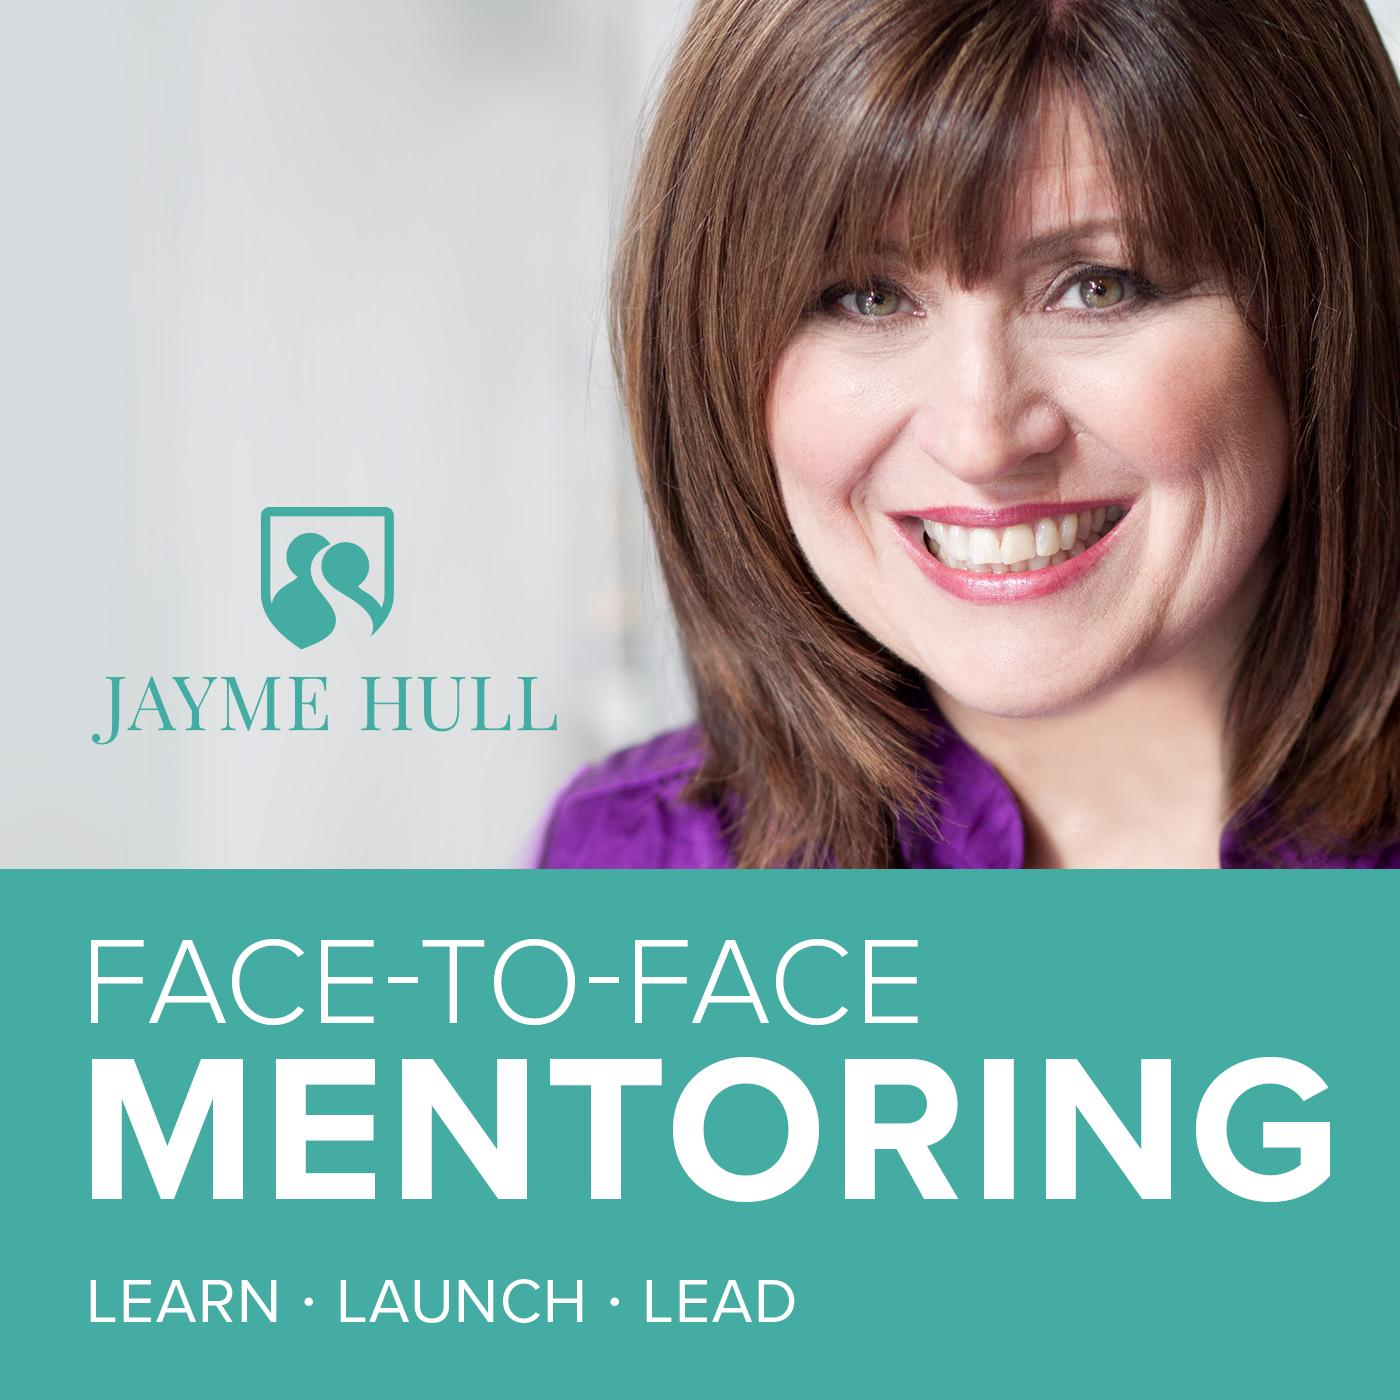 NEW PODCAST Face To Face Mentoring Learn. Launch. Lead.